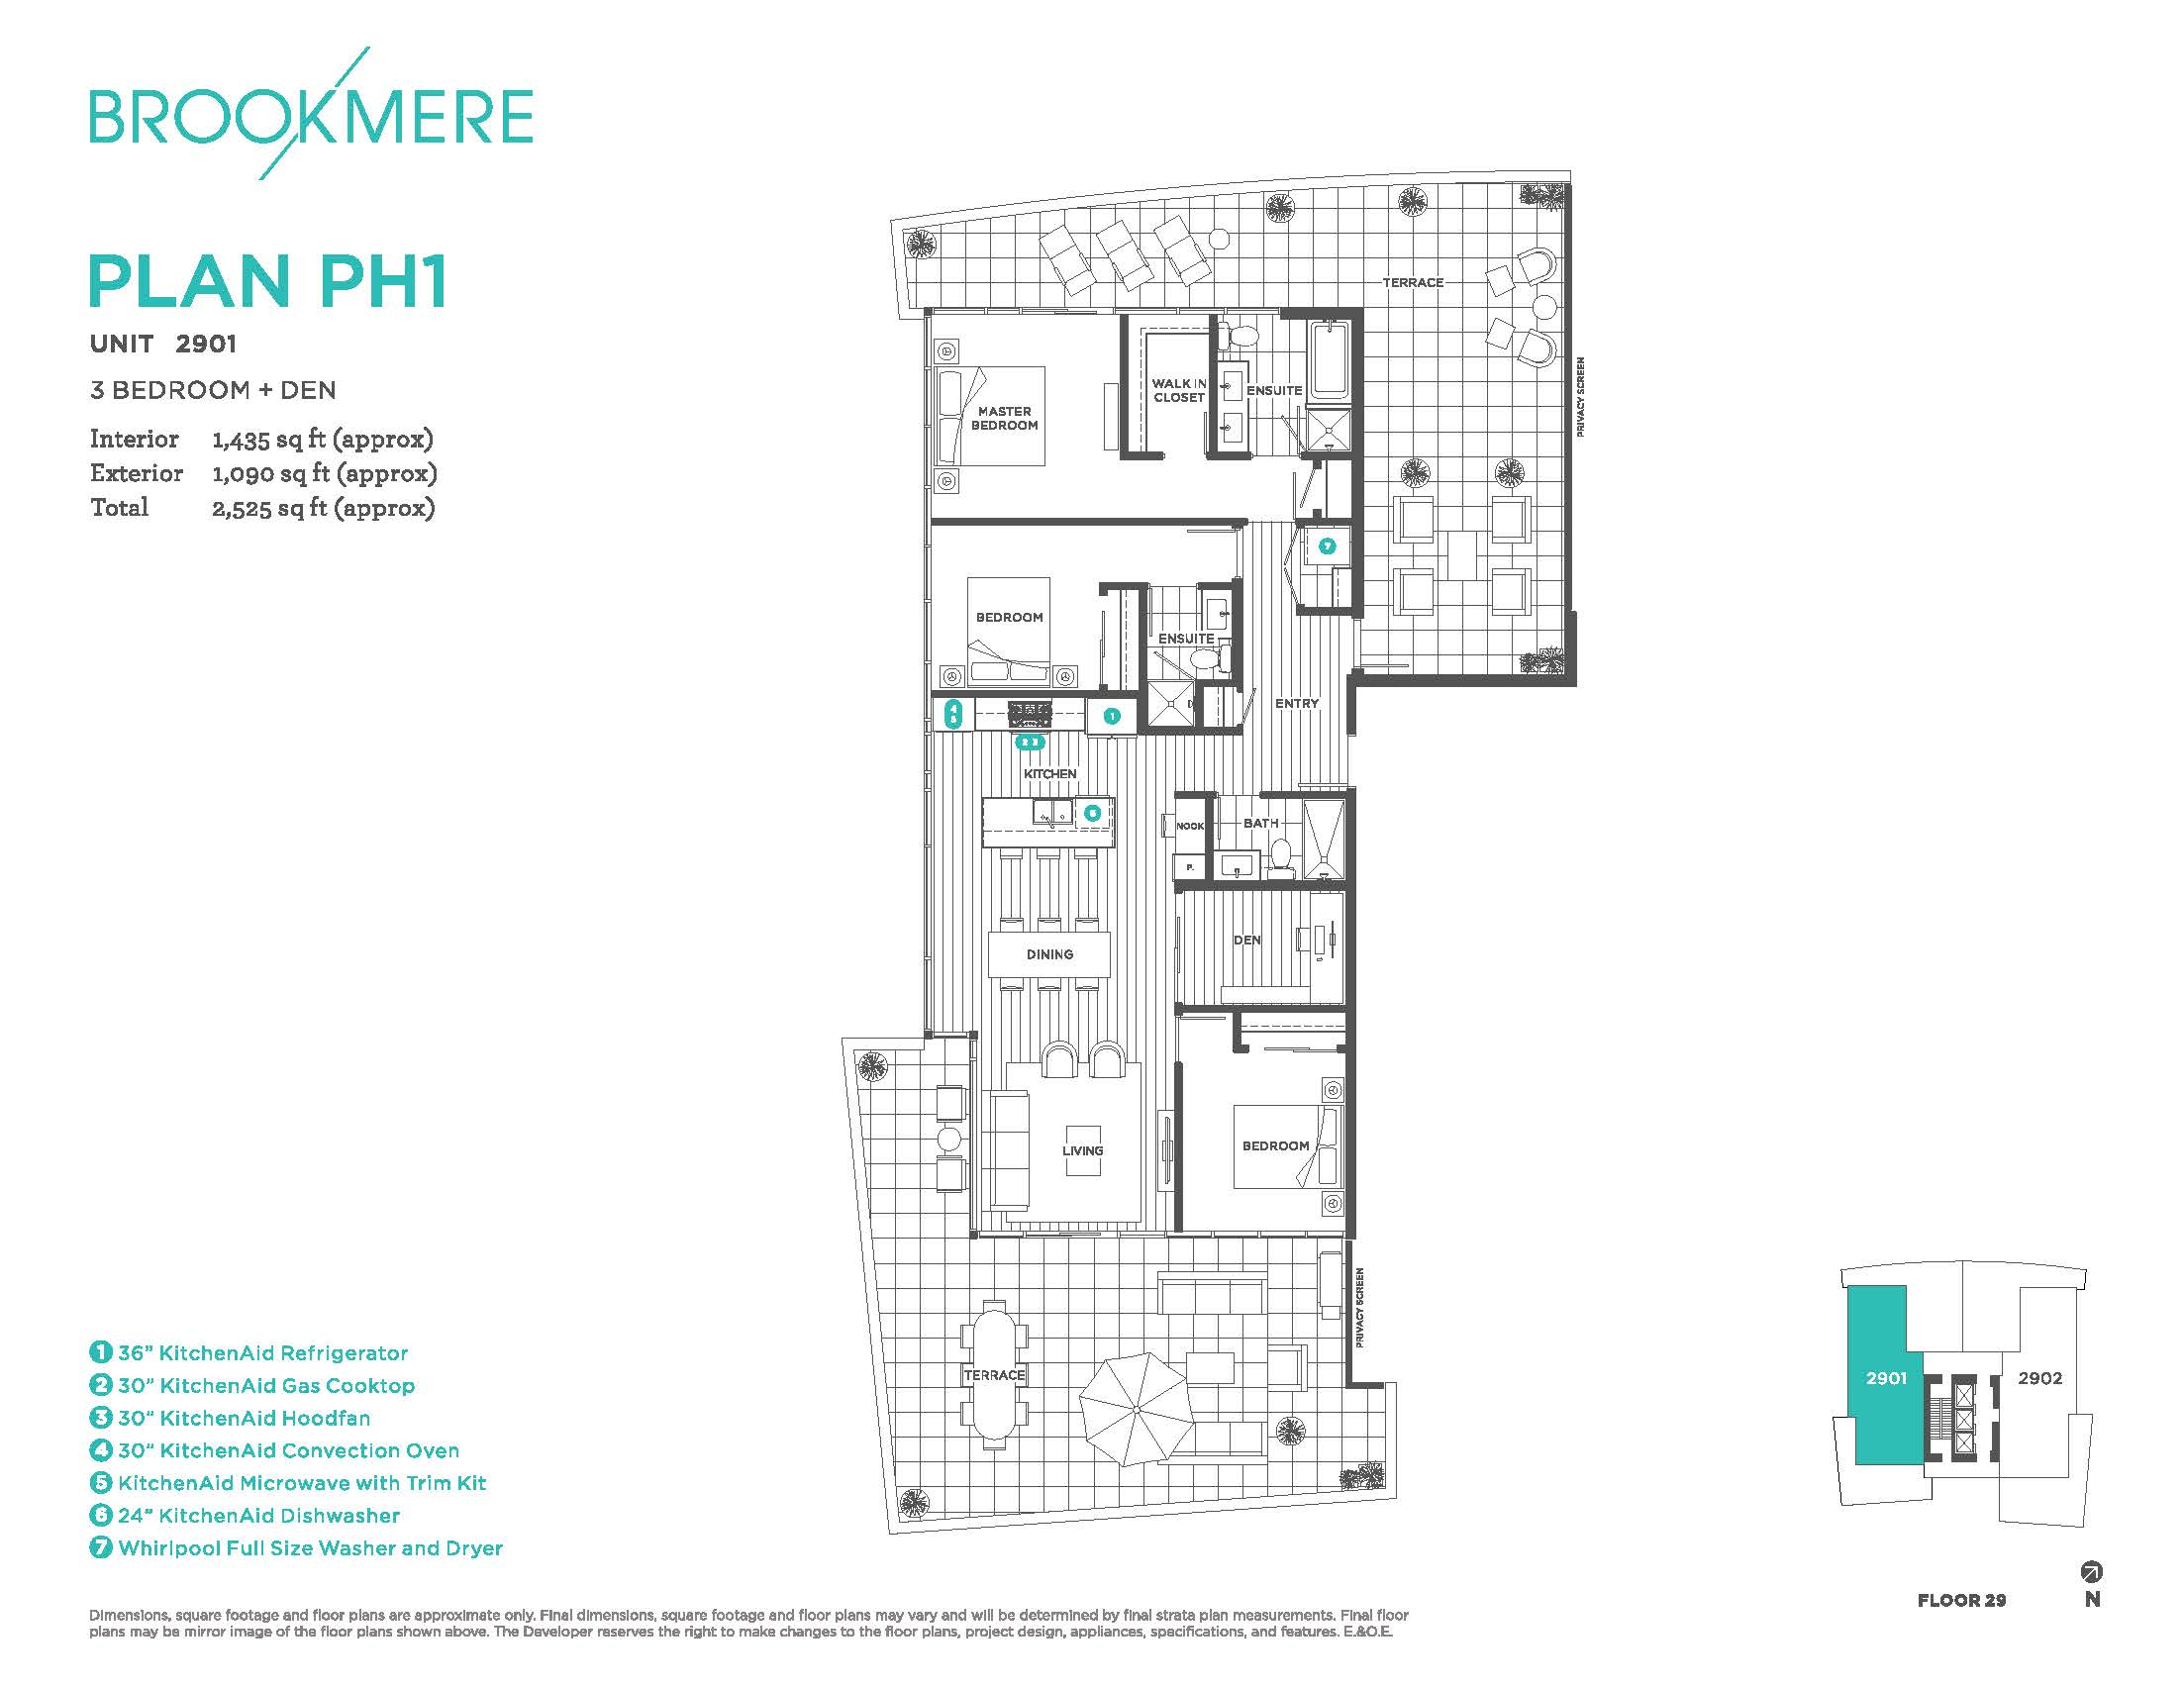 3 bed+den/3 bath - PH1